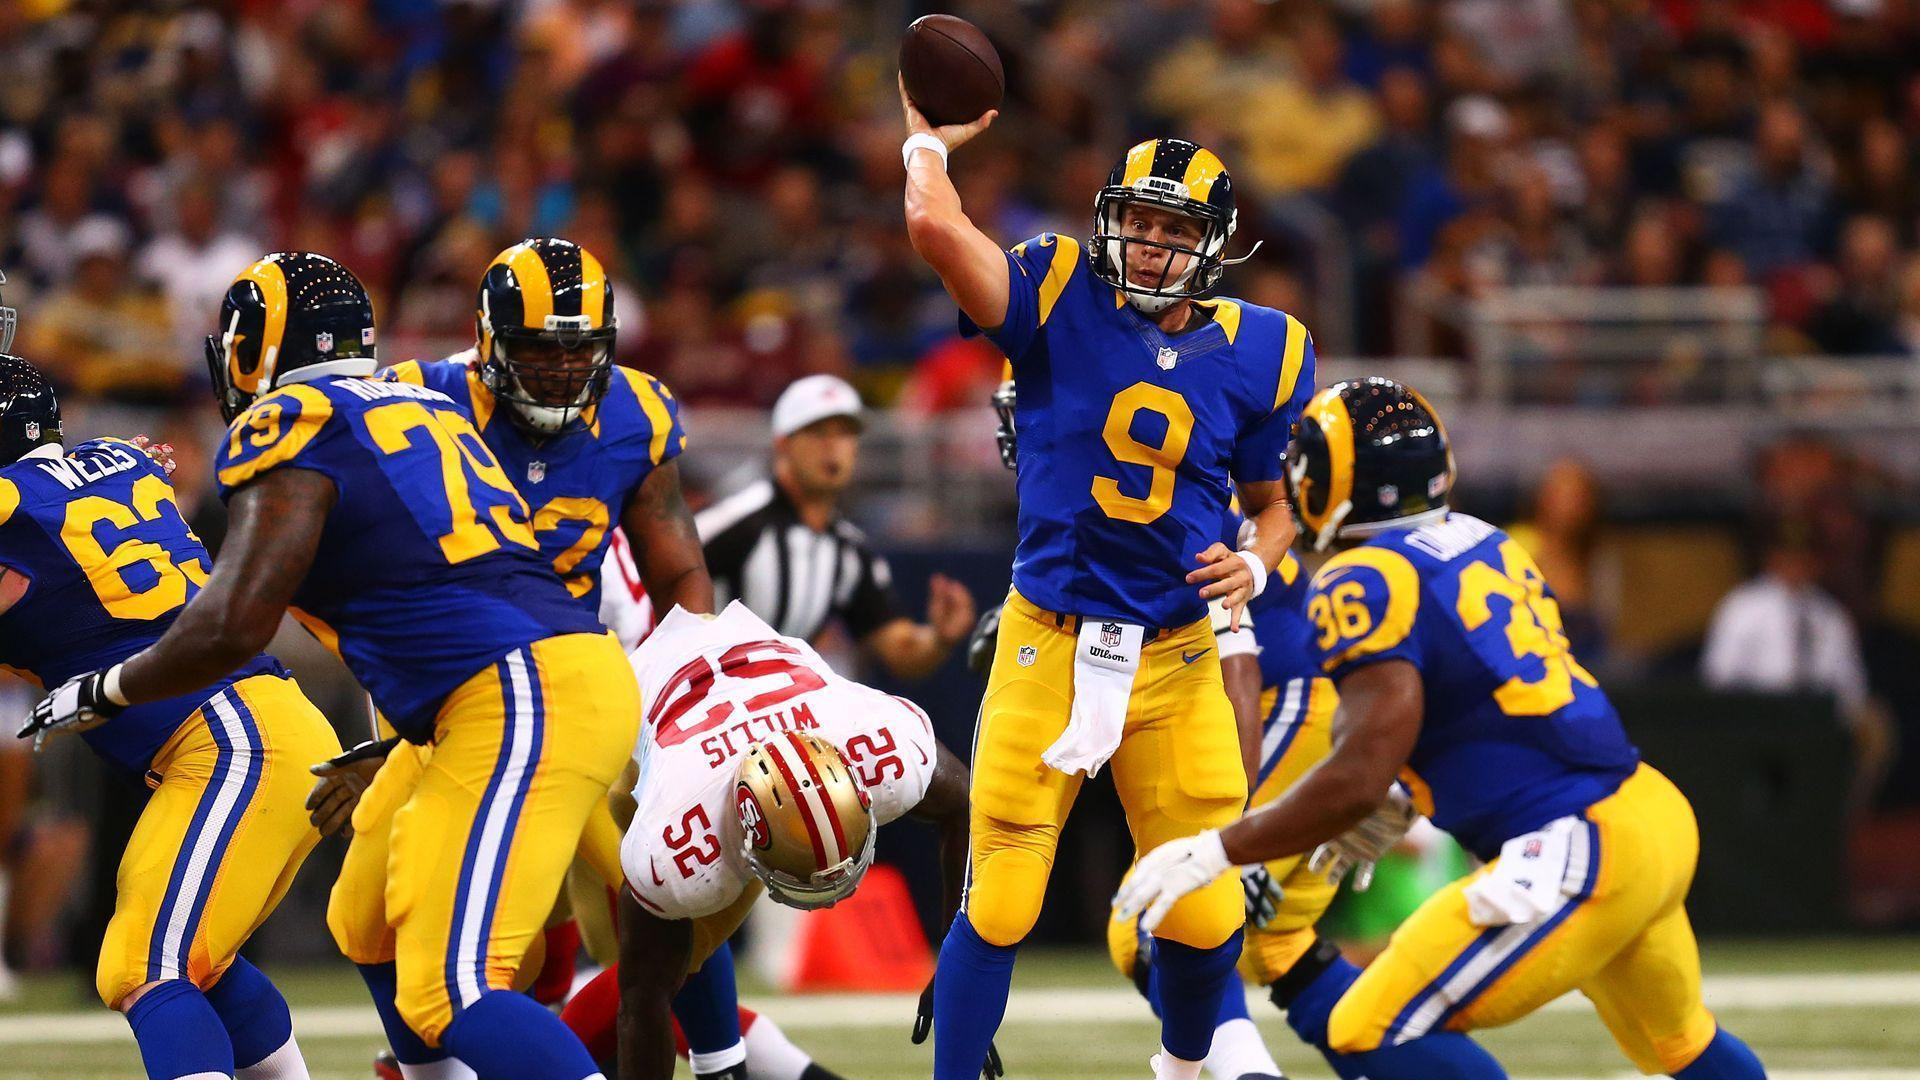 WELCOME BACK TO SOCAL, LOS ANGELES RAMS!